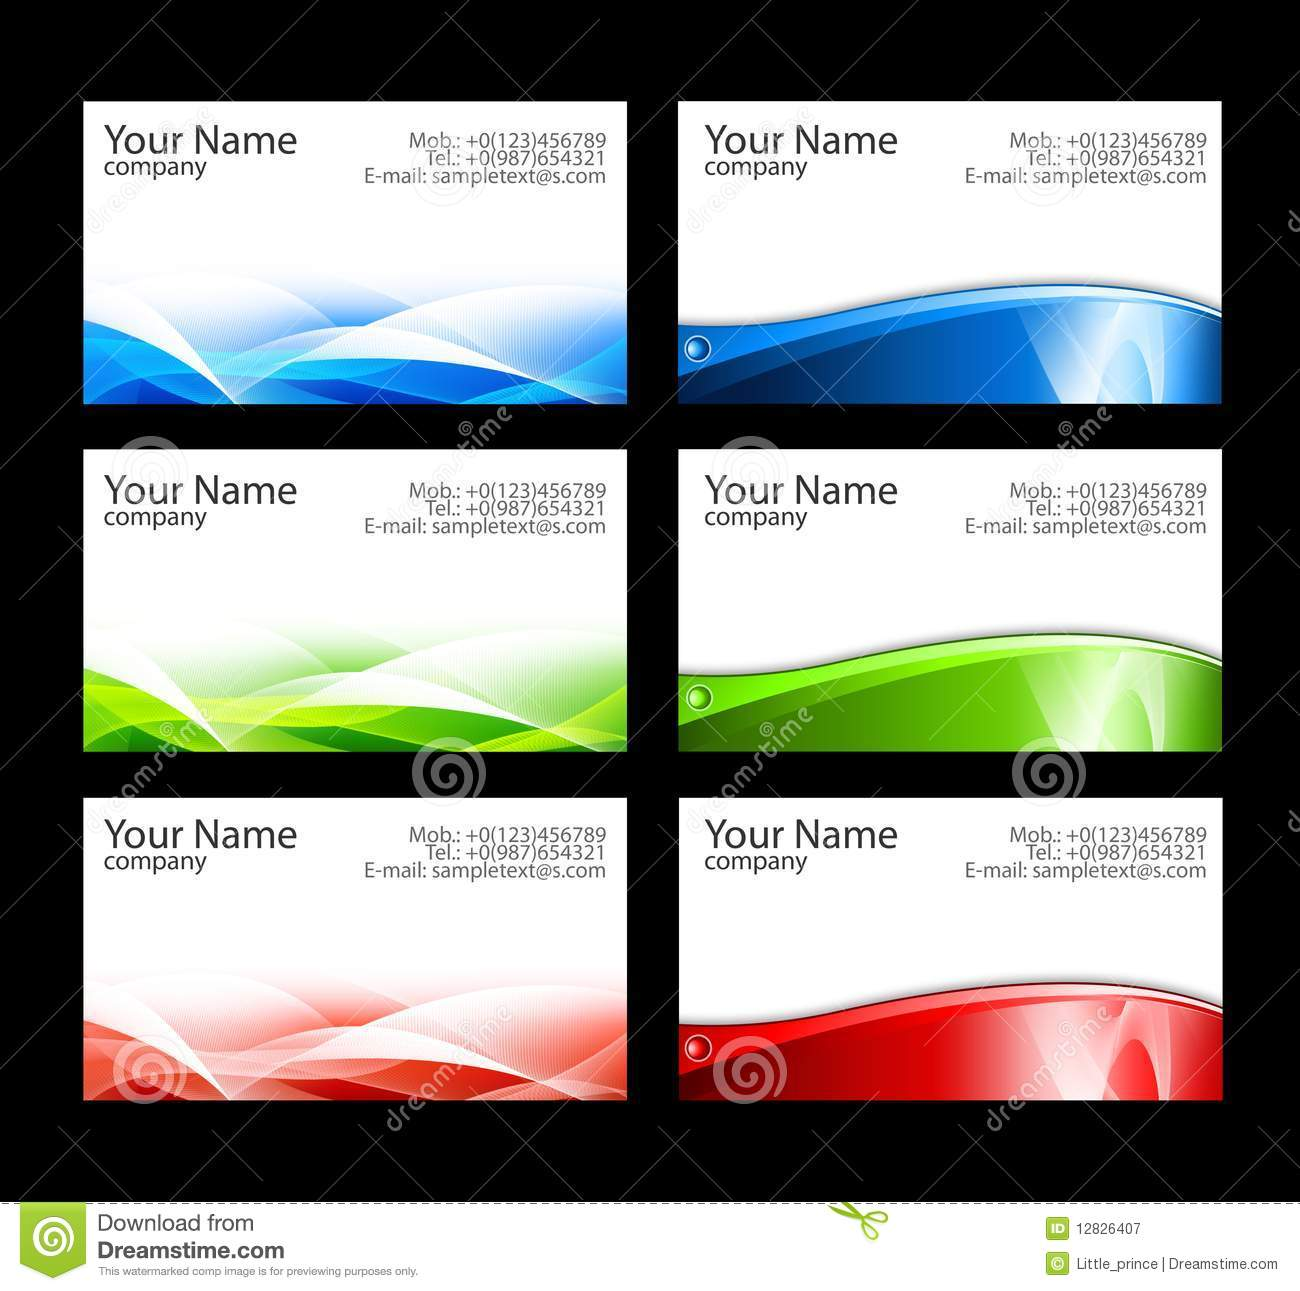 15 free avery business card templates images free business card free business card template wajeb Image collections